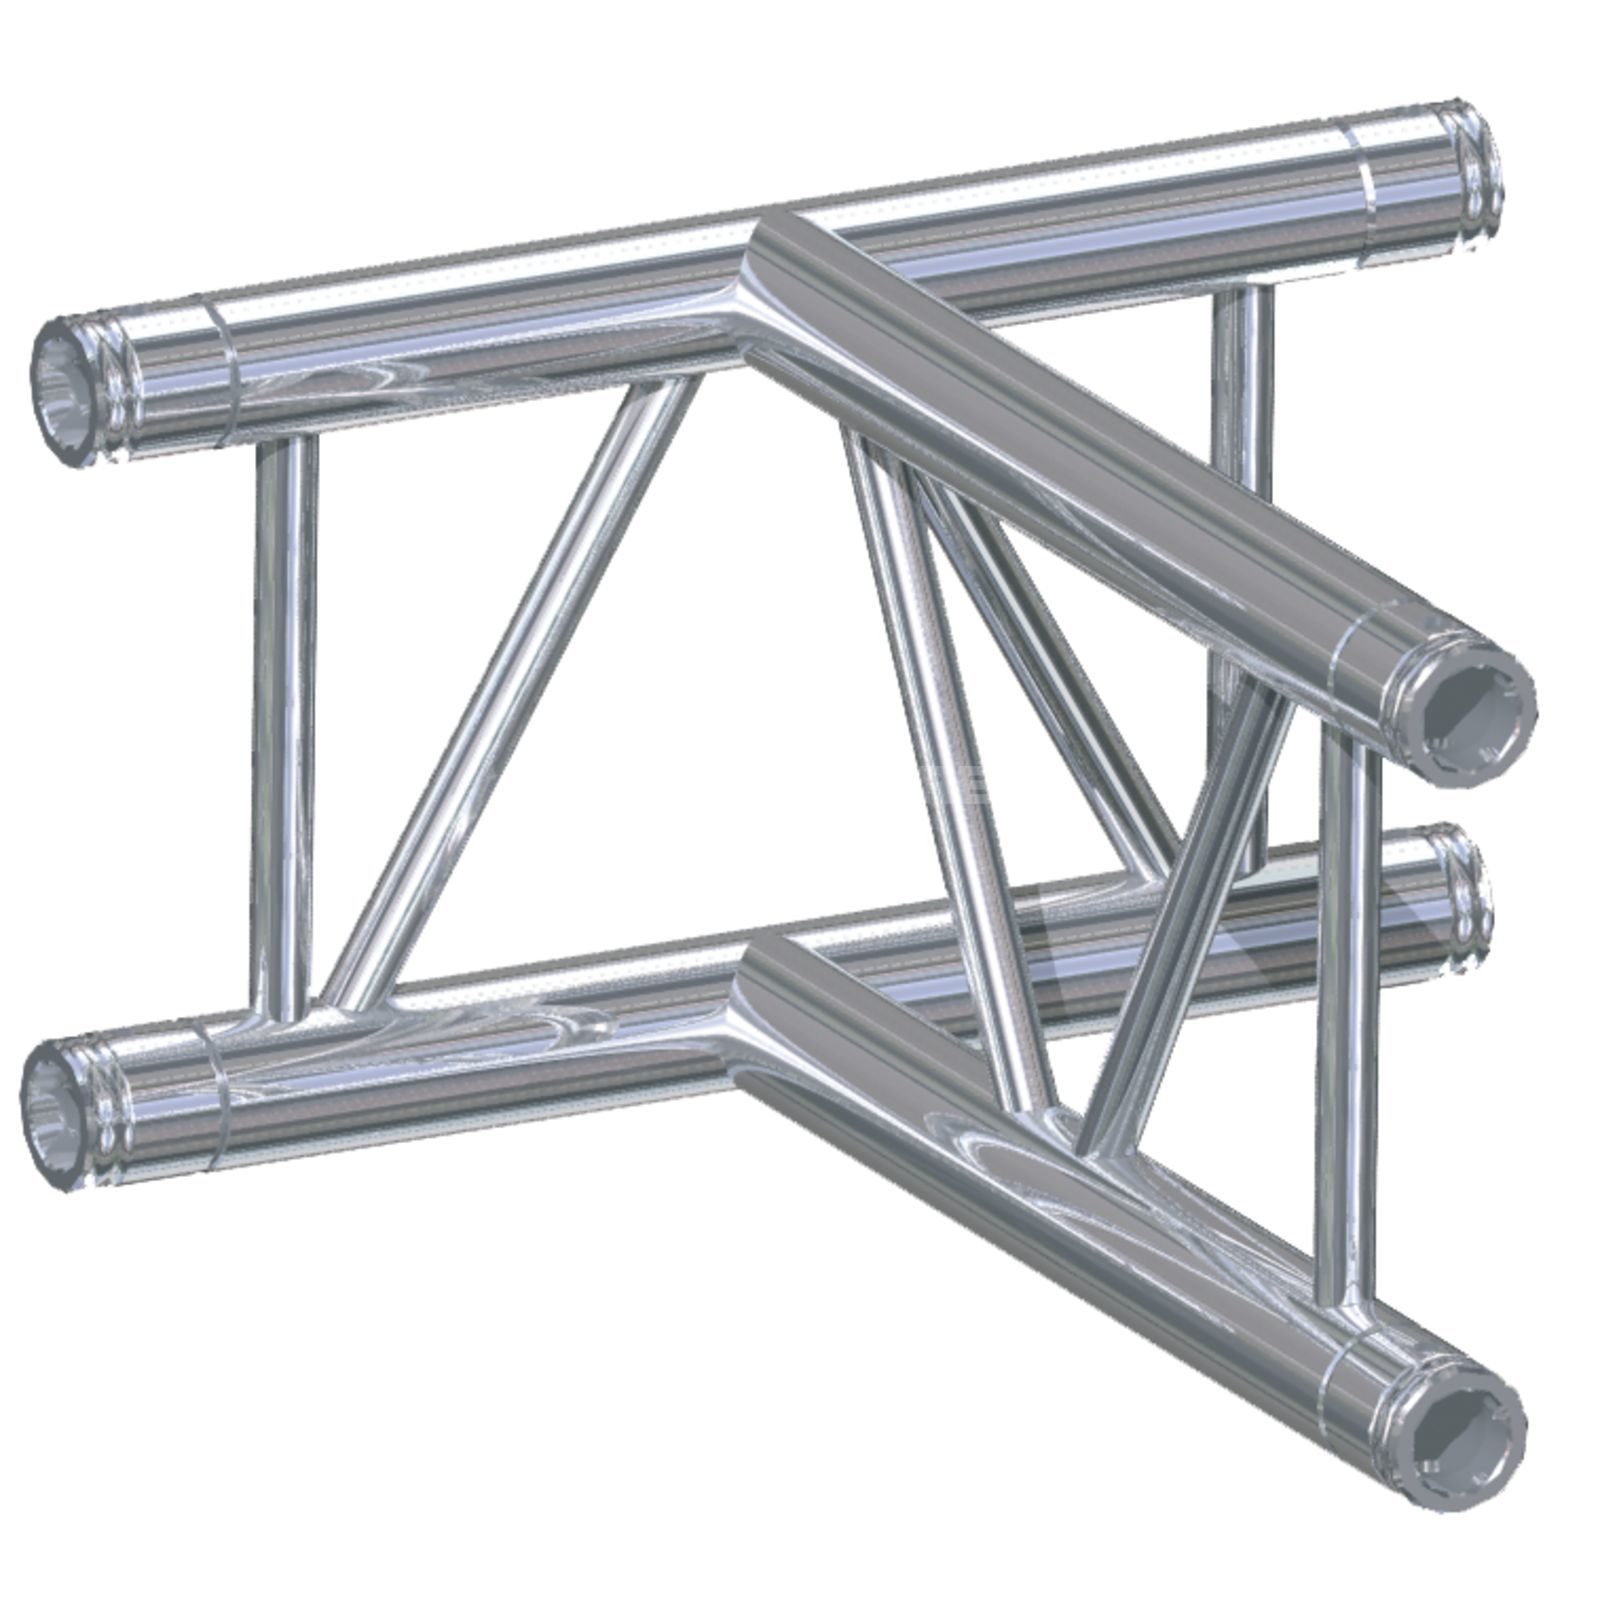 Global Truss F32, T-Piece, T35-36 VT horizontal & vertical Product Image